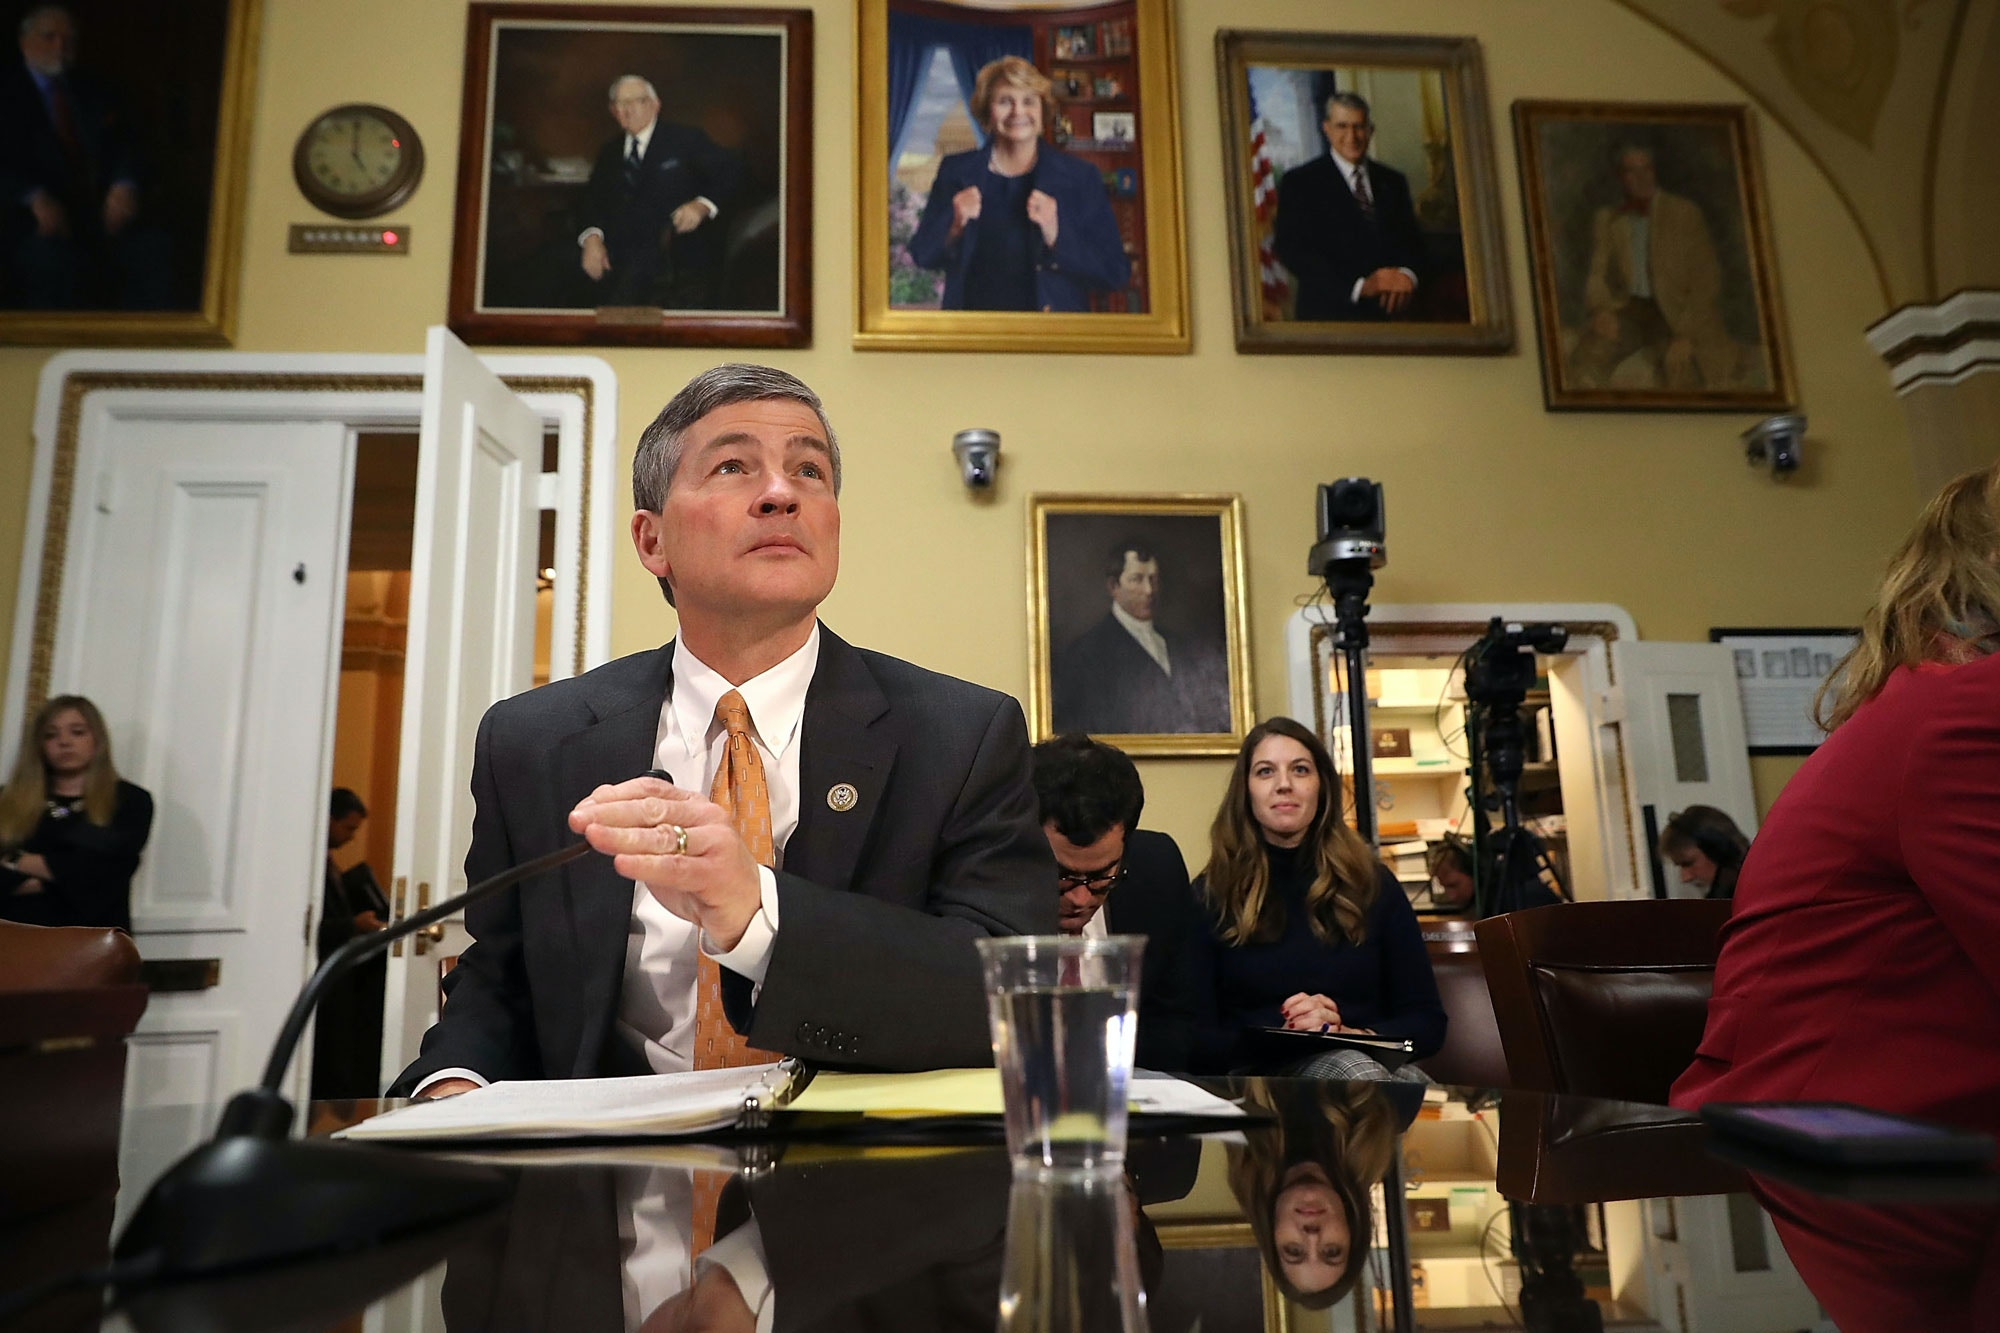 WASHINGTON, DC - DECEMBER 18:  House Finance Committee Chairman Jeb Hensarling (R-TX) prepares to testify before the House Rules Committee at the U.S. Capitol December 18, 2017 in Washington, DC. The committee will hold a hearing on the rules governing debate on the tax bill, which the House of Representativs is expected to vote on Tuesday.  (Photo by Chip Somodevilla/Getty Images)